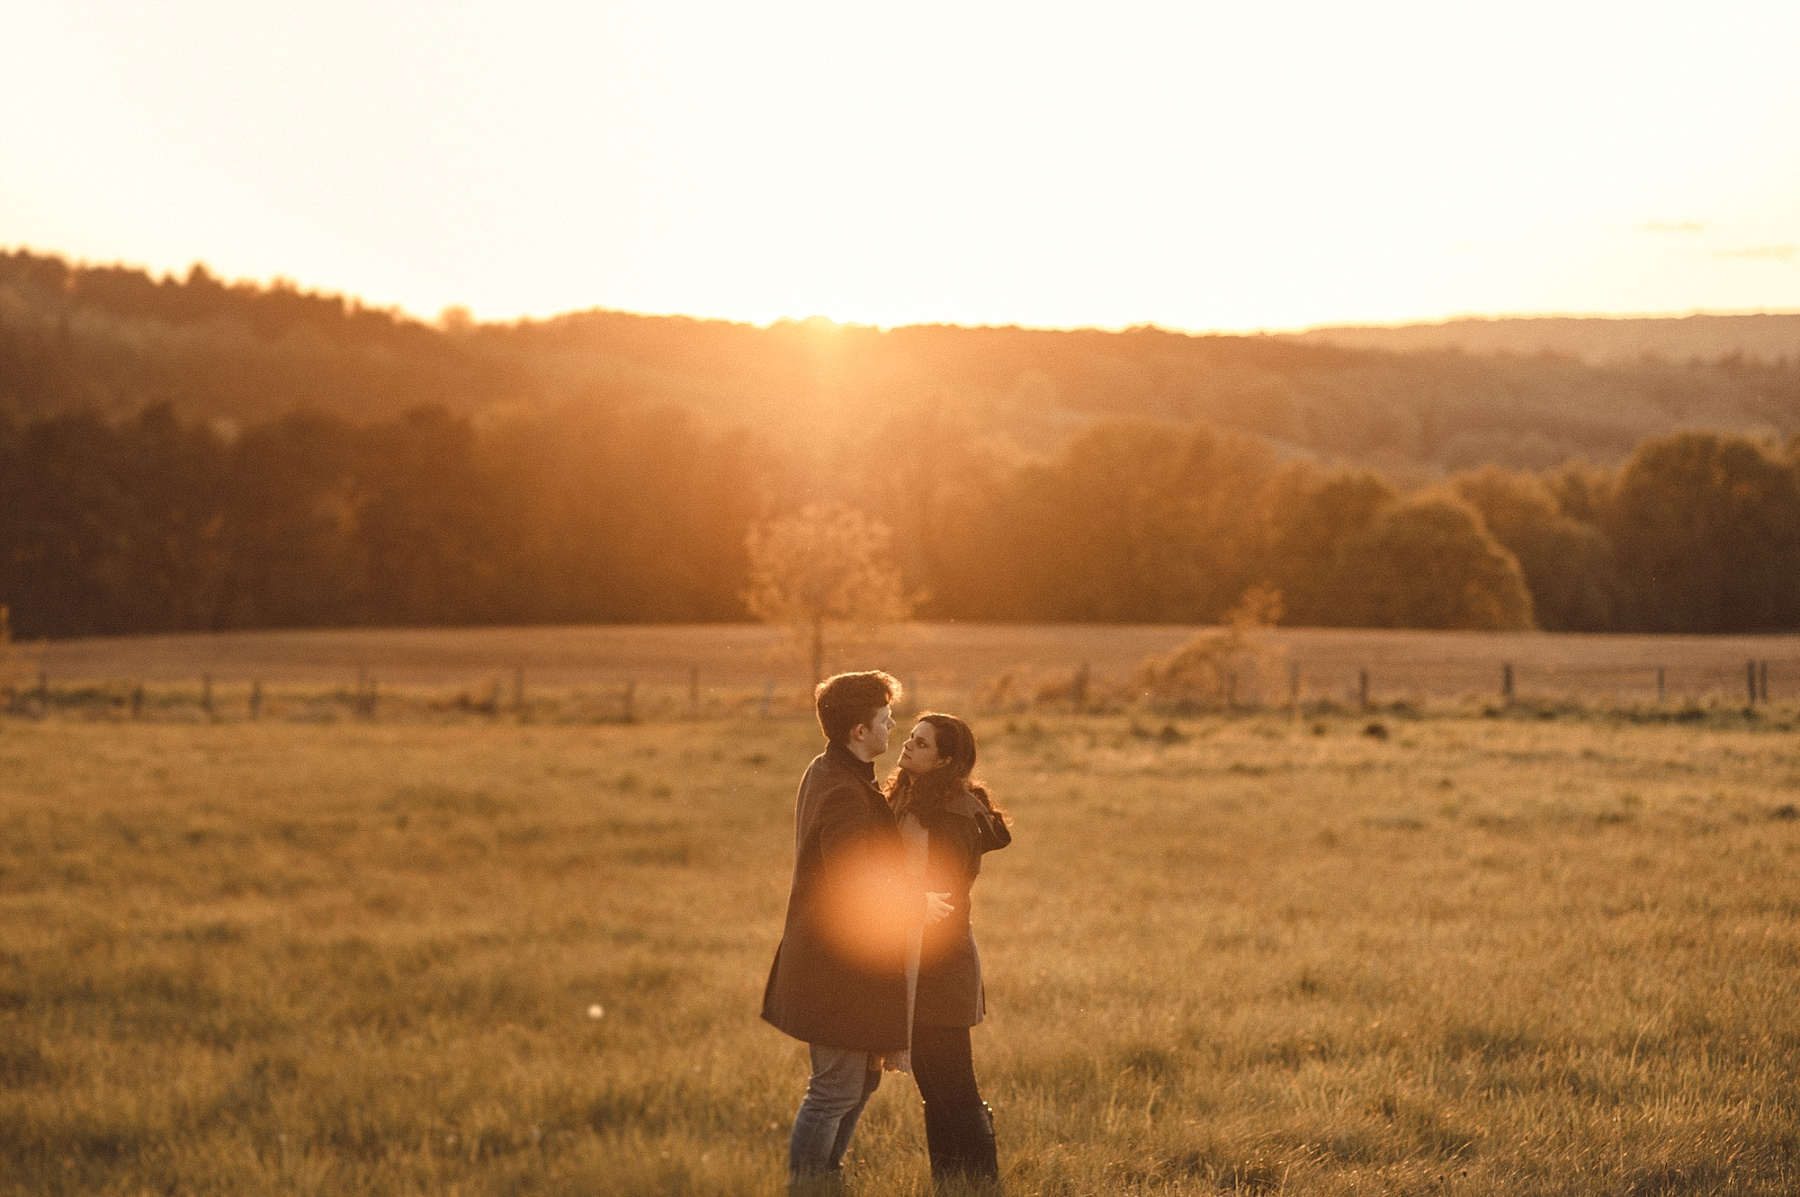 Photograph of couple standing in field in the hills